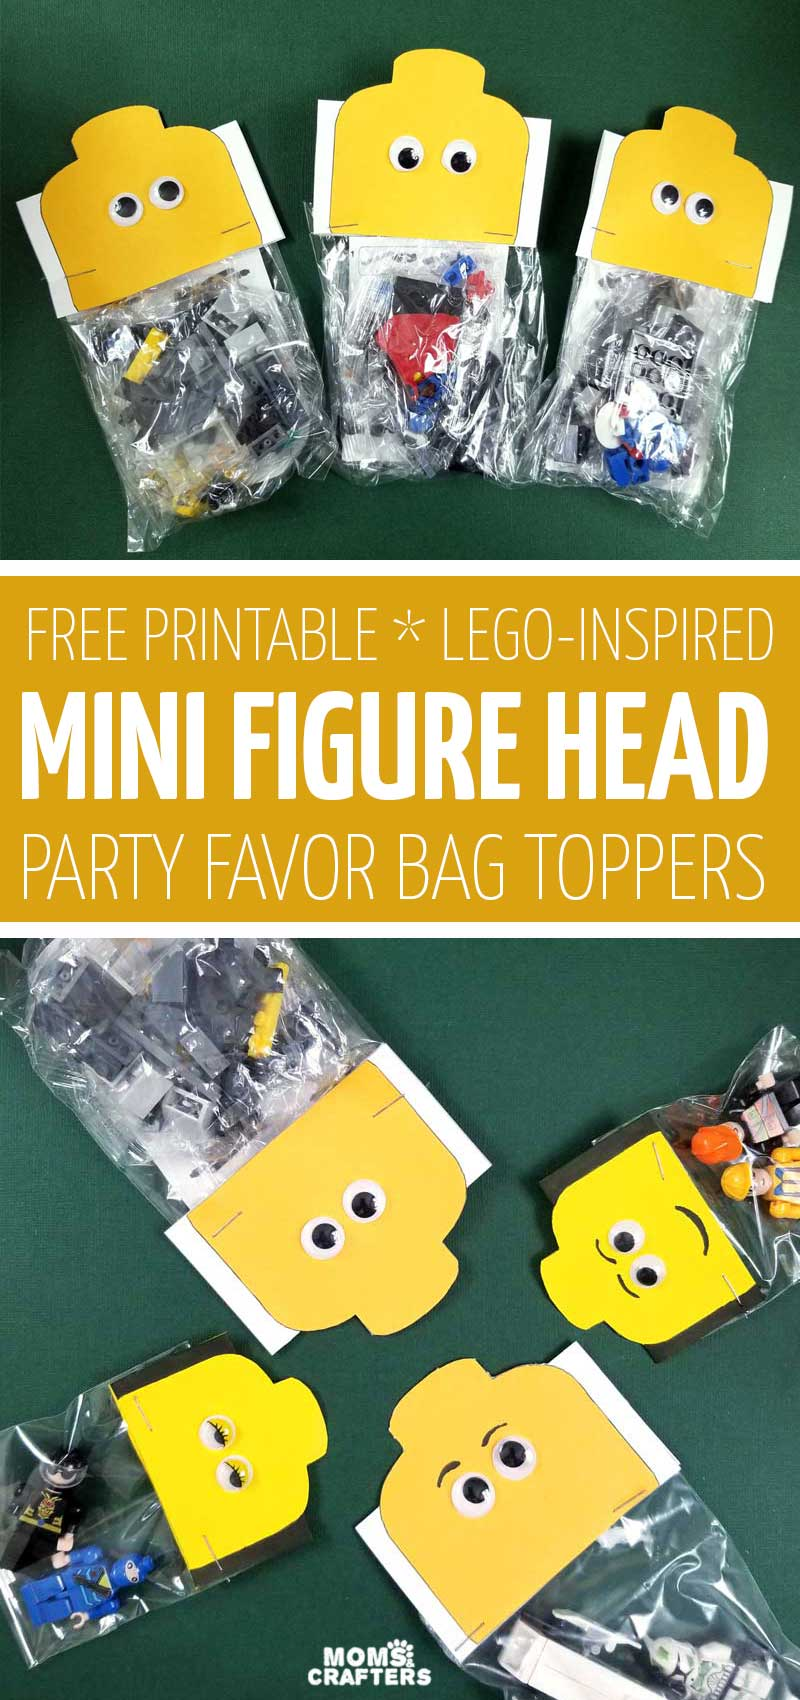 Click for some free printable LEGO inspired favor bags toppers - these cool free printables are in the shape of a minifigure head and are such cool birthday party ideas for a building brick themed party treat bags!